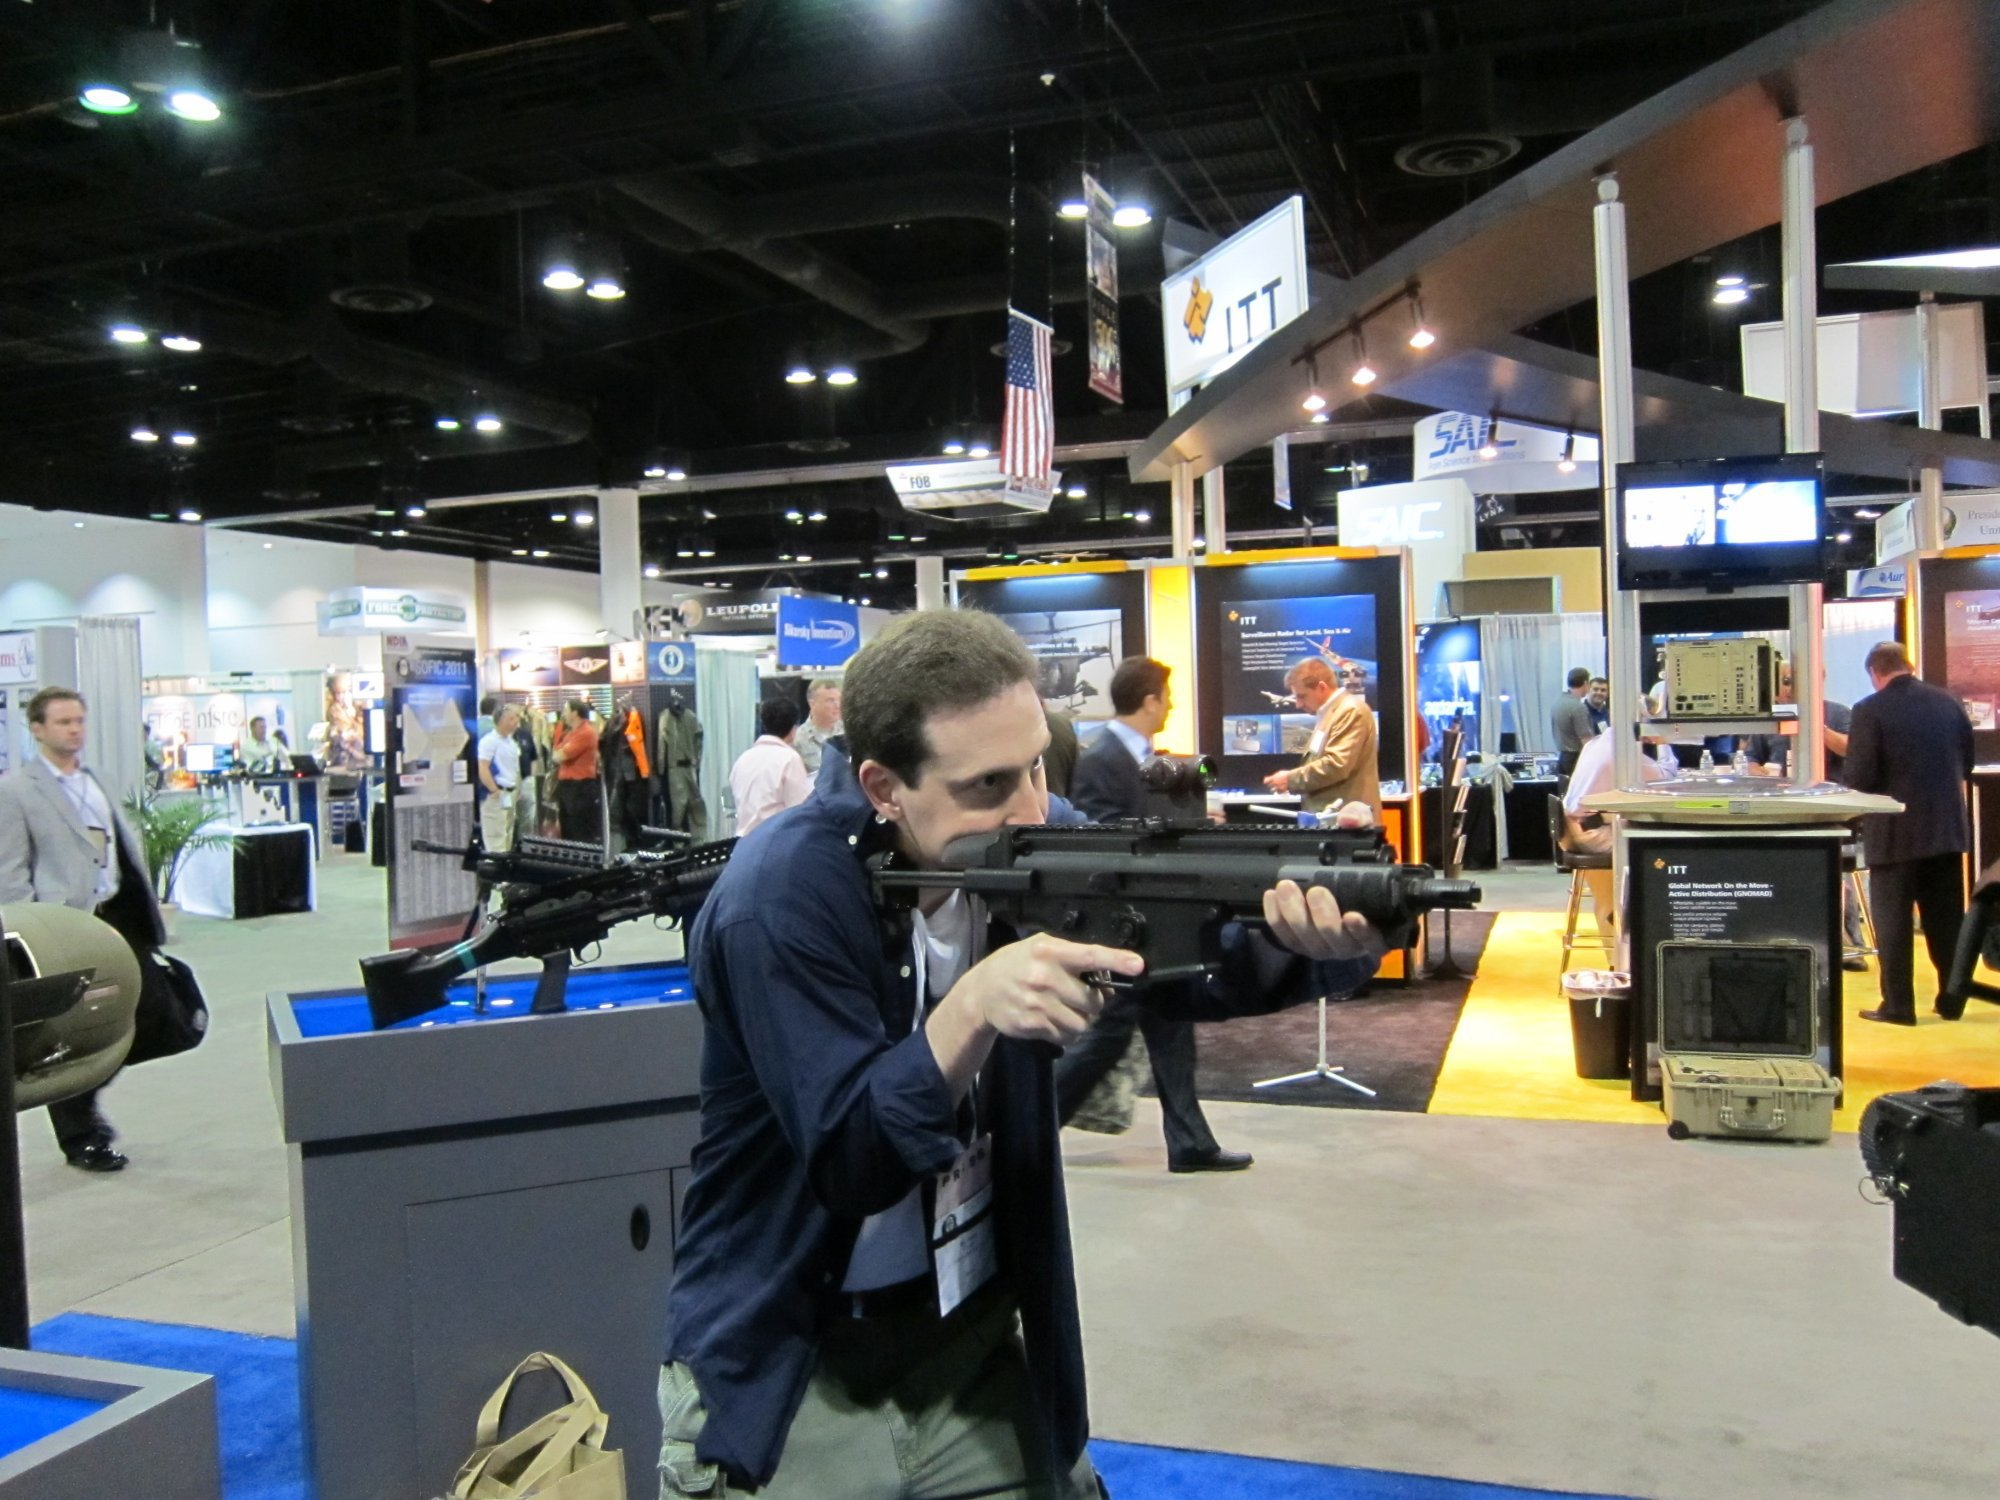 FNH USA FN SCAR PDW Compact Assault SBR 5.56mm NATO David Crane SOFIC 2011 DefenseReview DR 2 <!  :en  >FN SCAR PDW (Personal Defense Weapon) Compact Select Fire 5.56mm NATO SBR for Special Operations Forces (SOF) Applications: DR Handles the Weapon at SOFIC 2011 and NDIA Small Arms Symposium 2011 (Photos!)<!  :  >